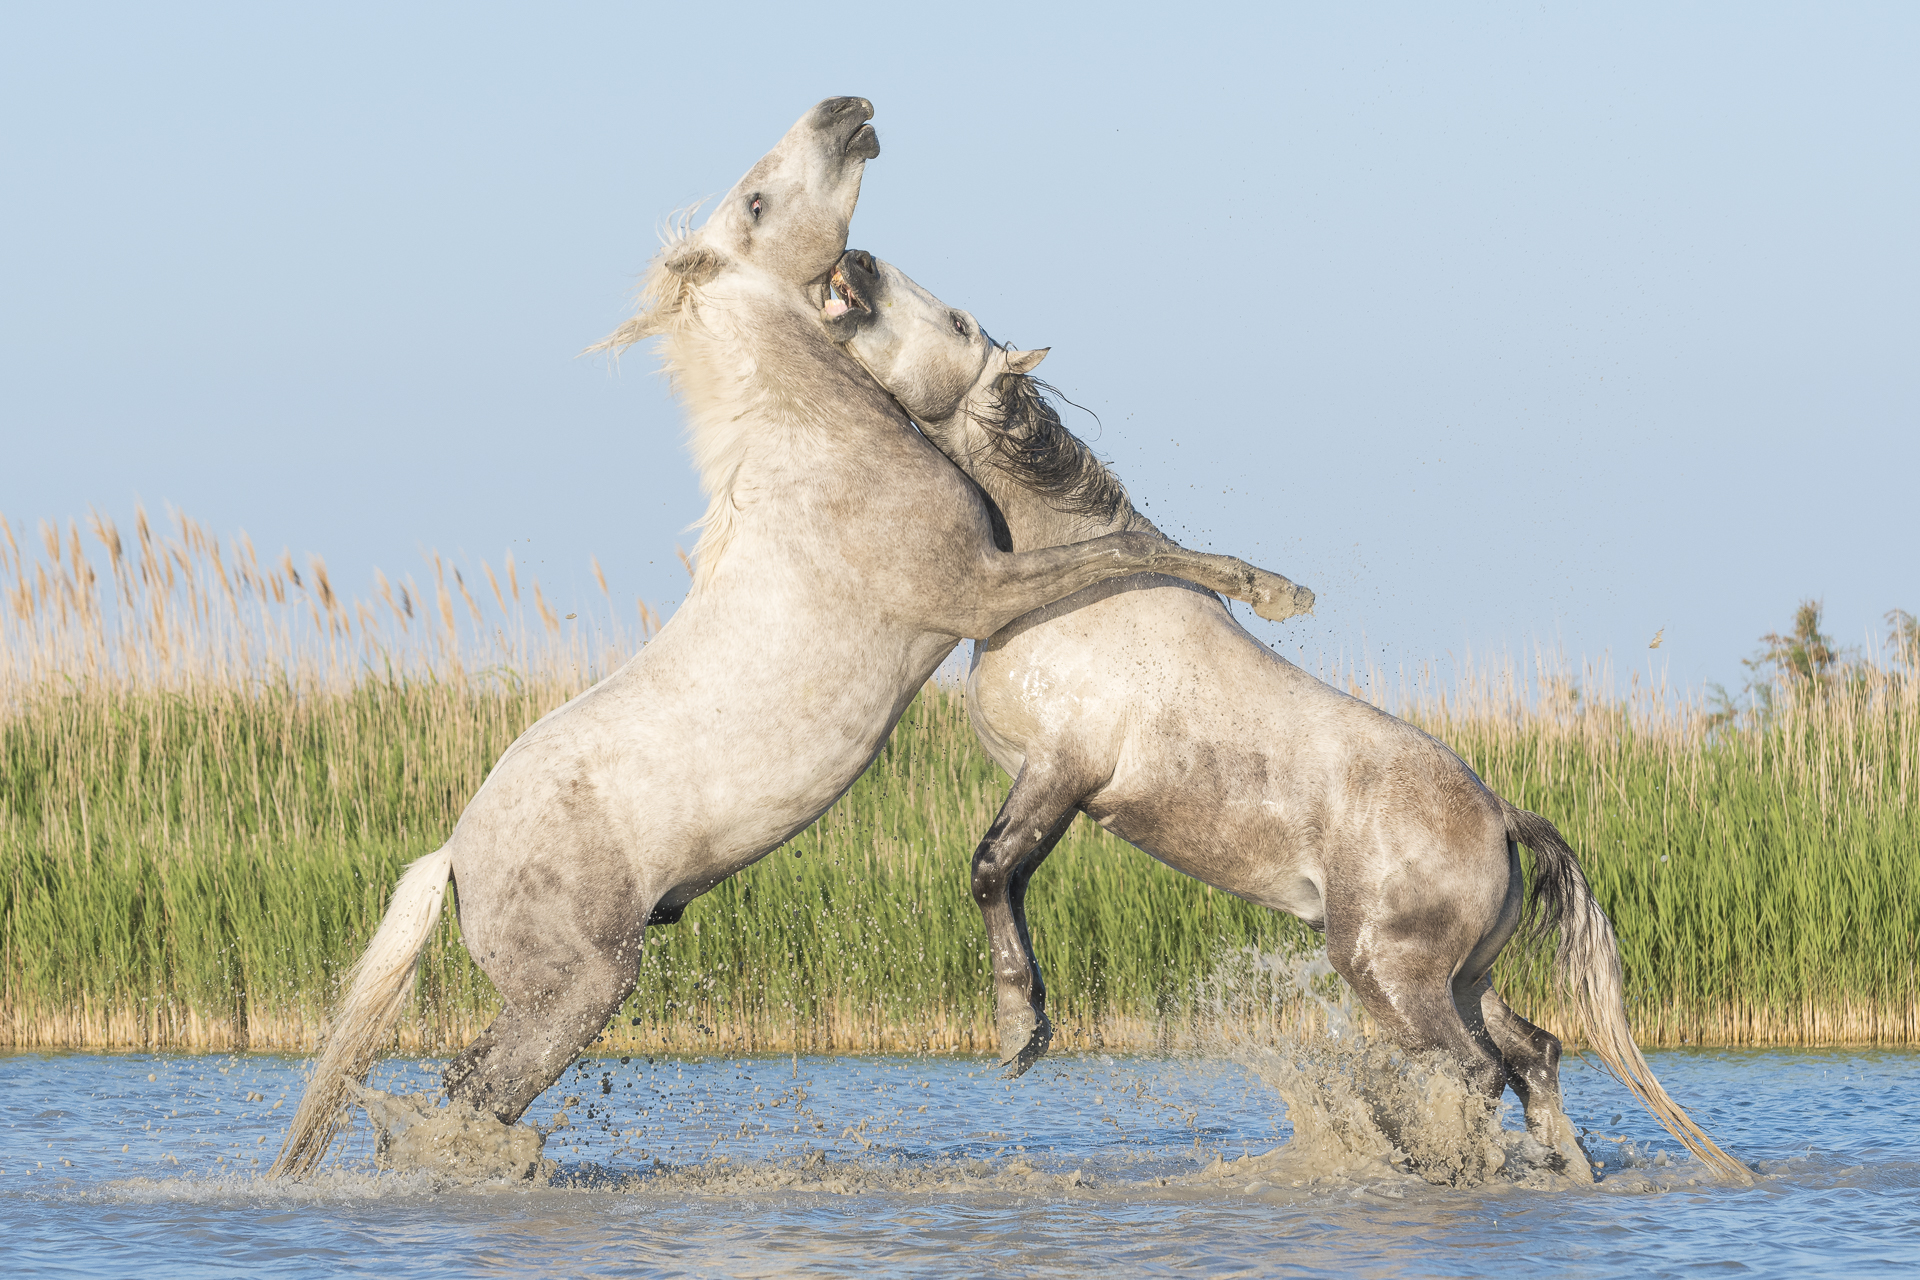 Stallions fighting. Parc naturel régional de Camargue. France.